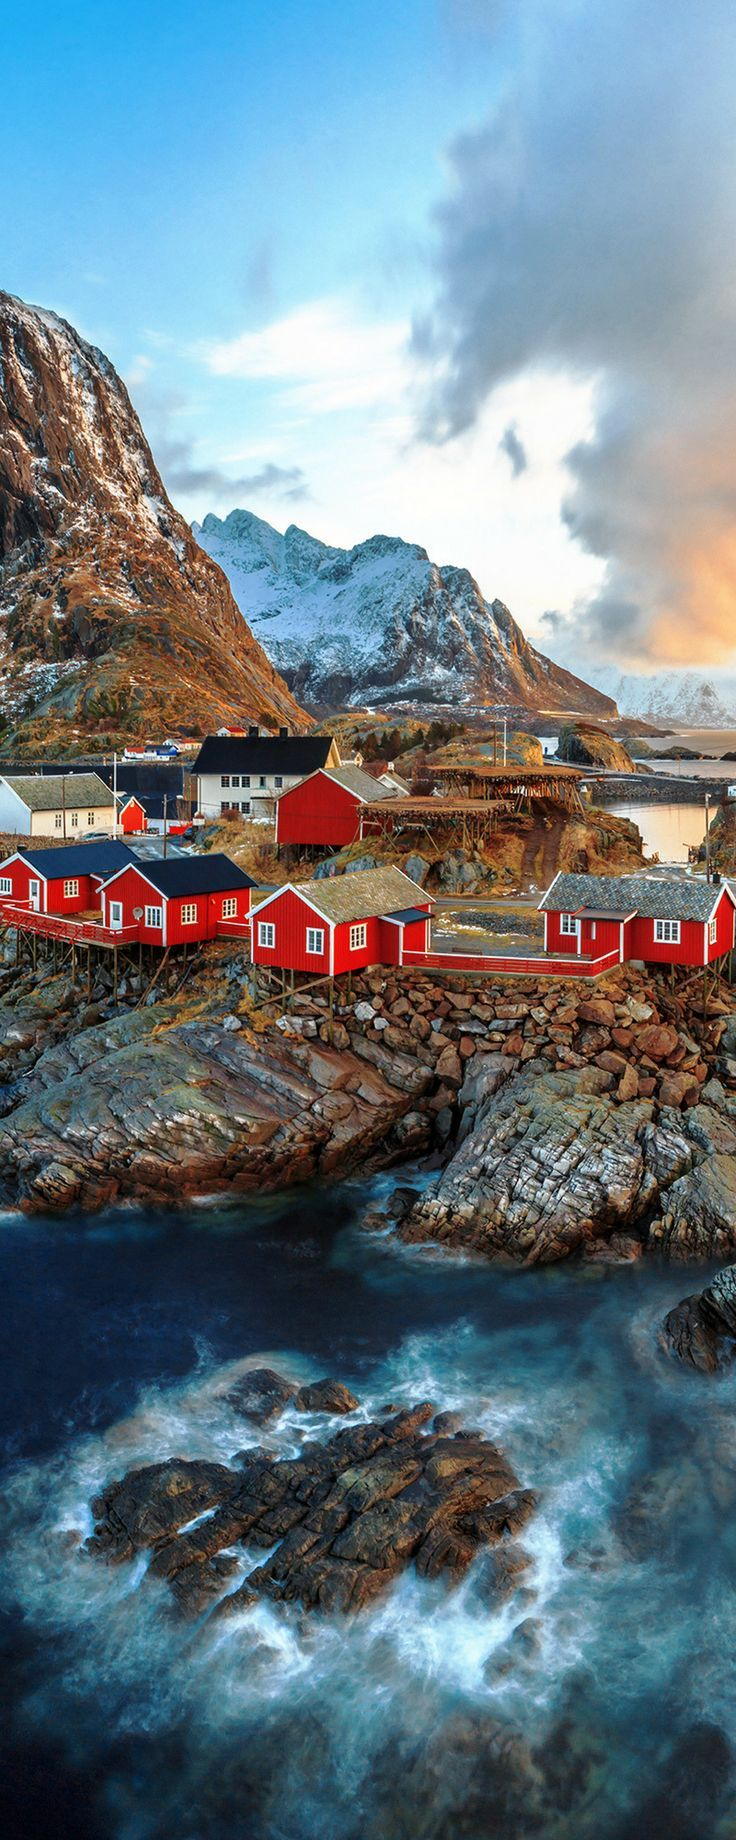 Reine, Lofoten Islands, Norway.  Whether you travel to Norway in the summer or winter you are sure to have an amazing time!  Enjoy 20 incredible photos of Norway!  Fjords | Alesund | Flam | | Bergen | Nature | Waterfalls